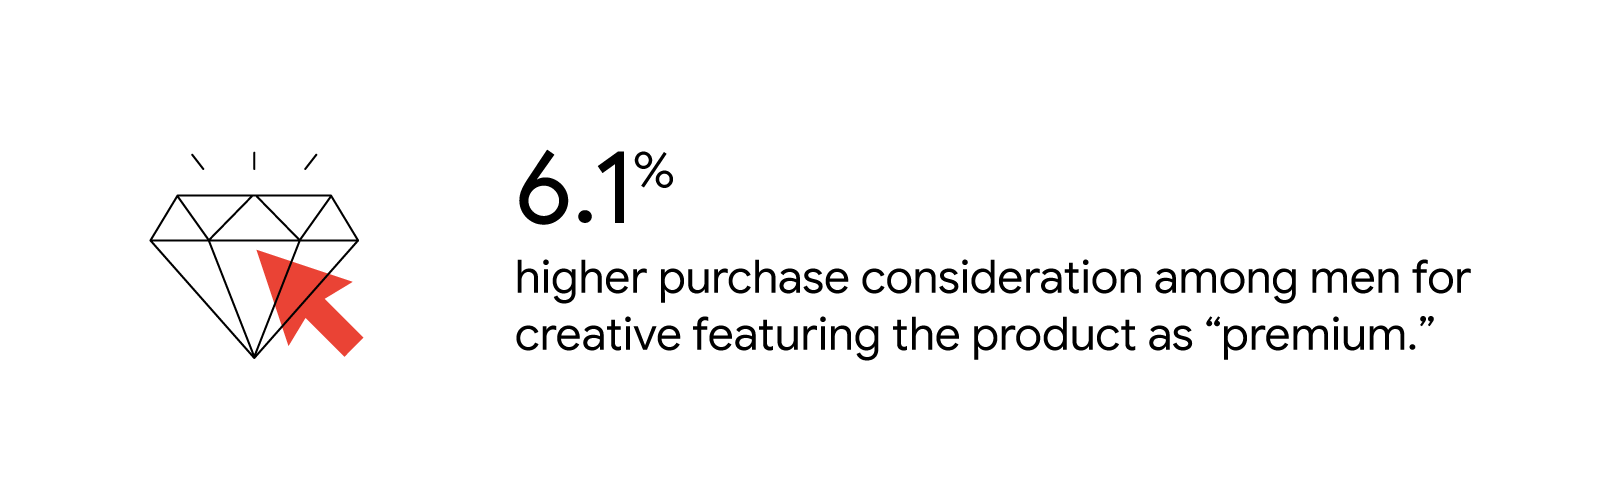 "6.1% higher purchase consideration for creative featuring the product as ""premium."""